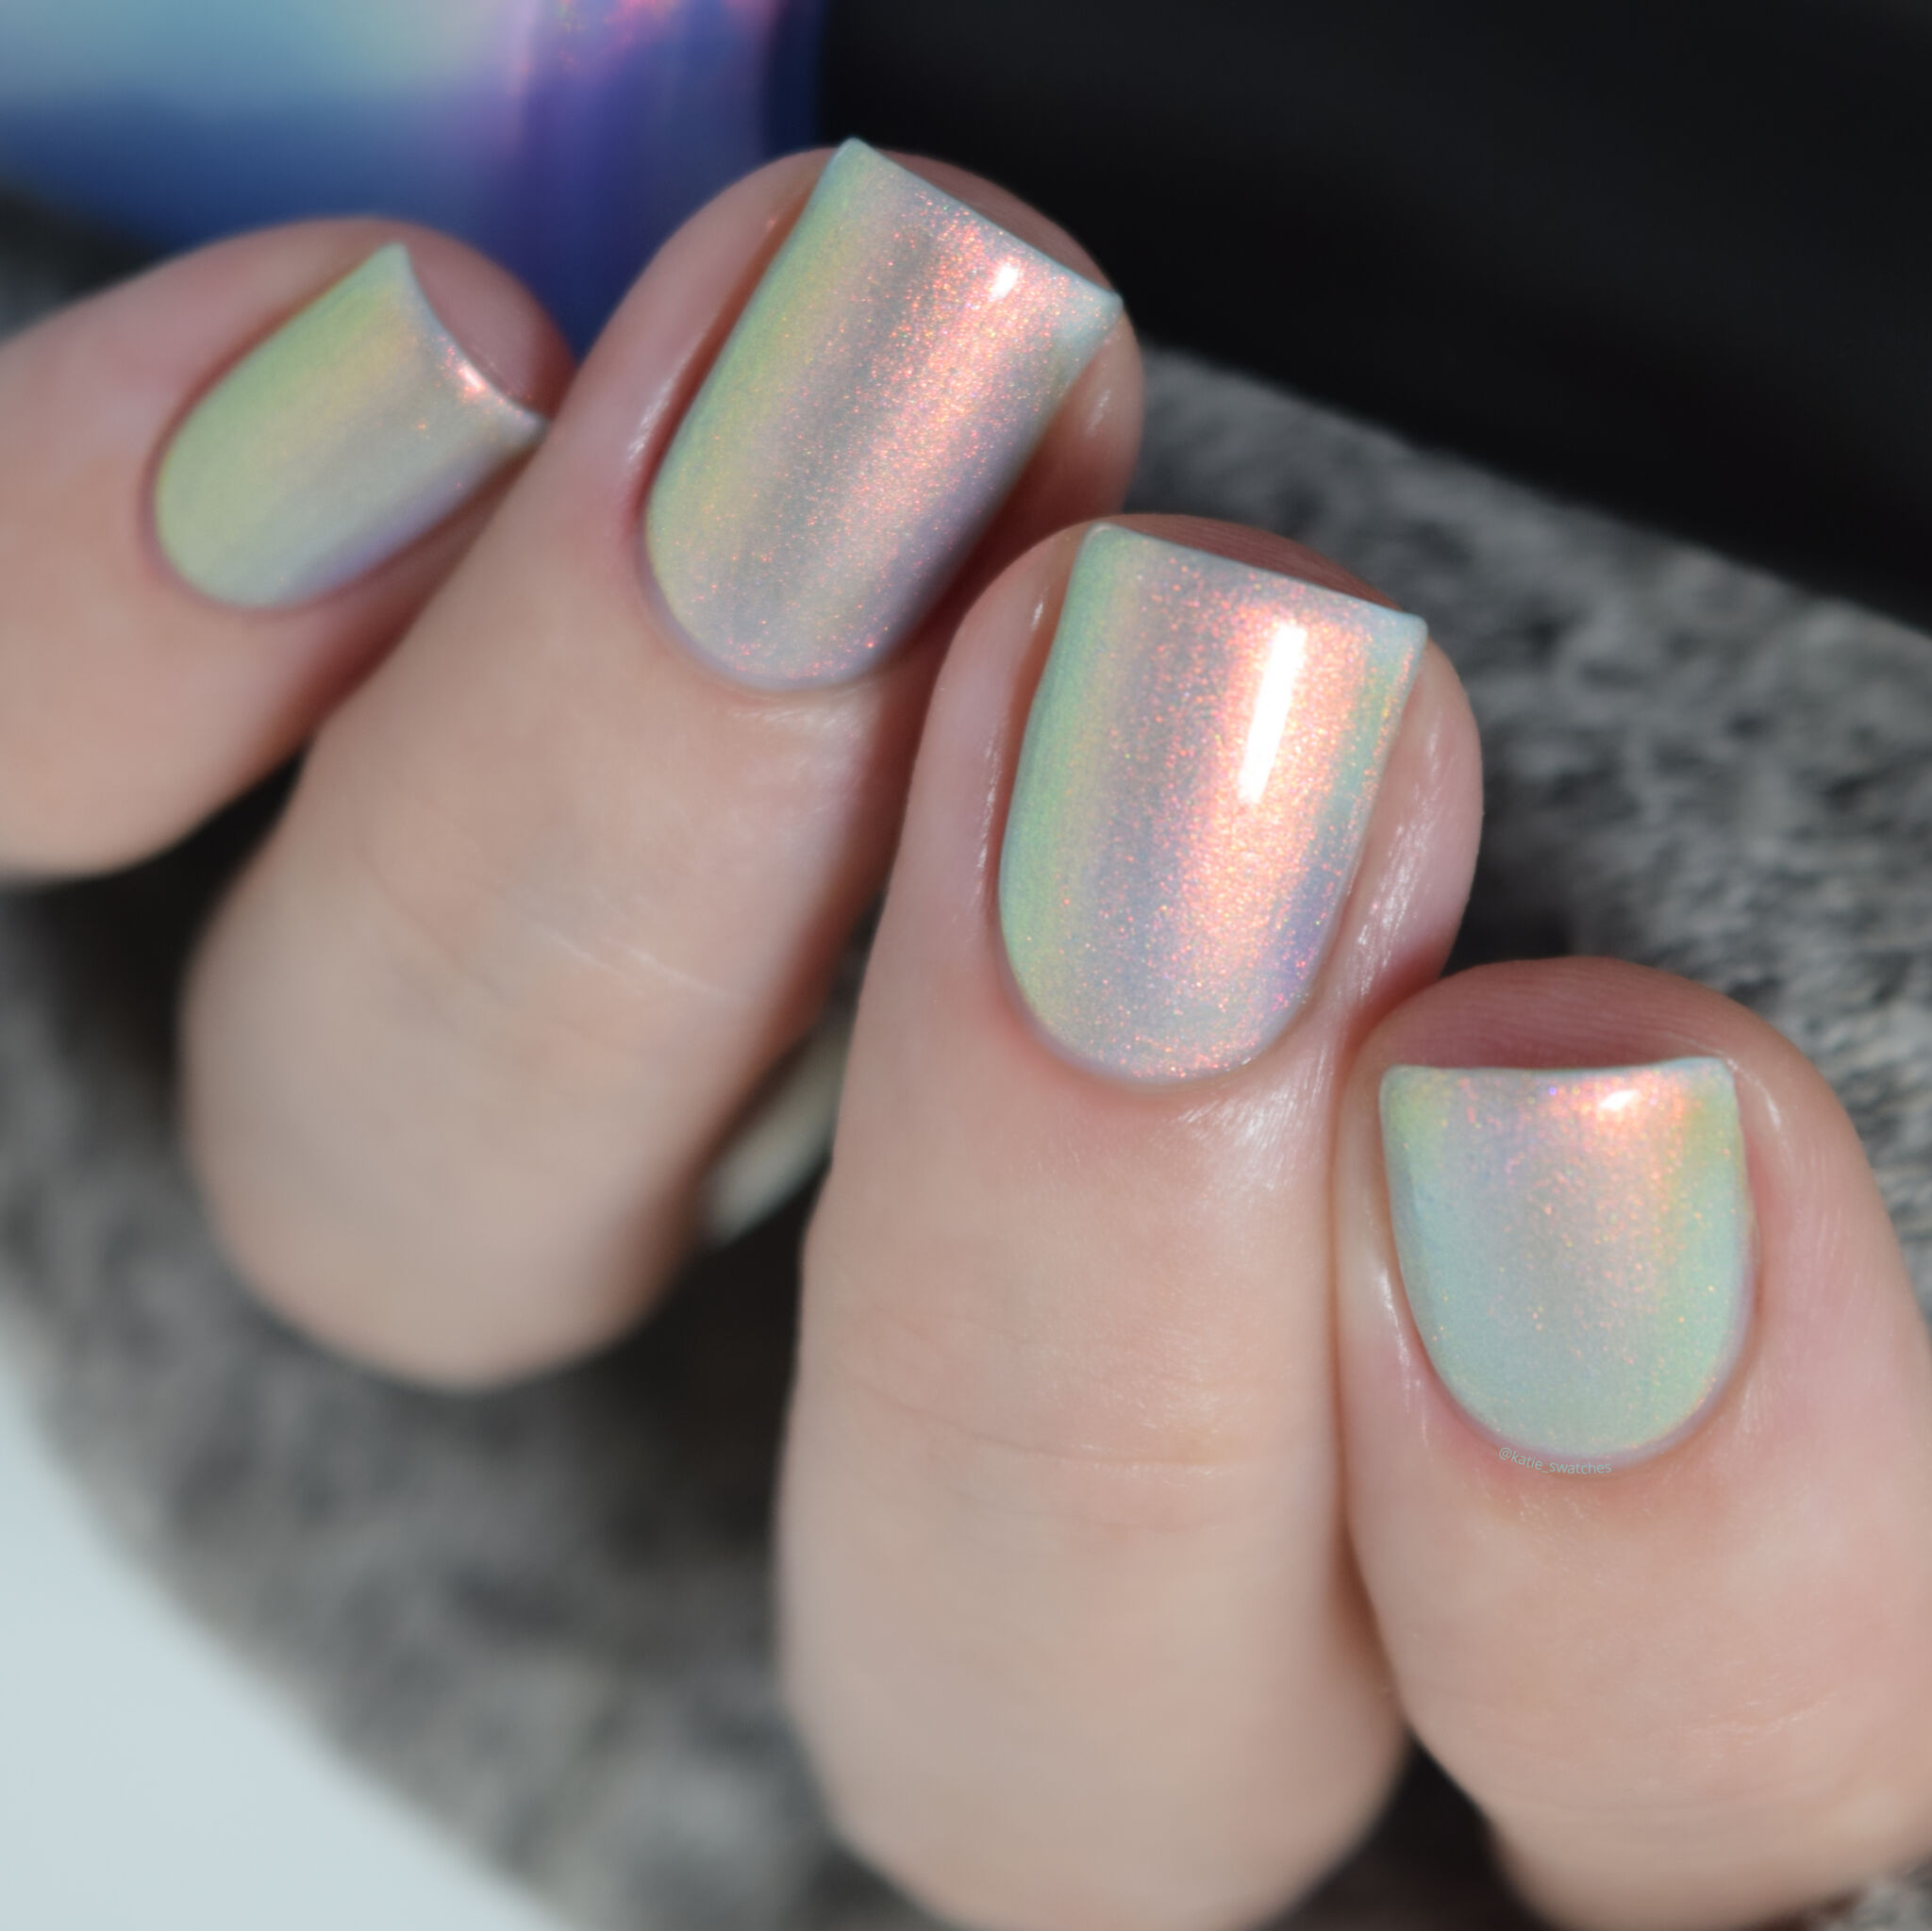 Ethereal Lacquer Under the Sea pale marine blue nail polish with pastel copper-pink shimmer - Polish Pickup PPU November 2019, PPU Rewind 2020 - indie nail polish swatch